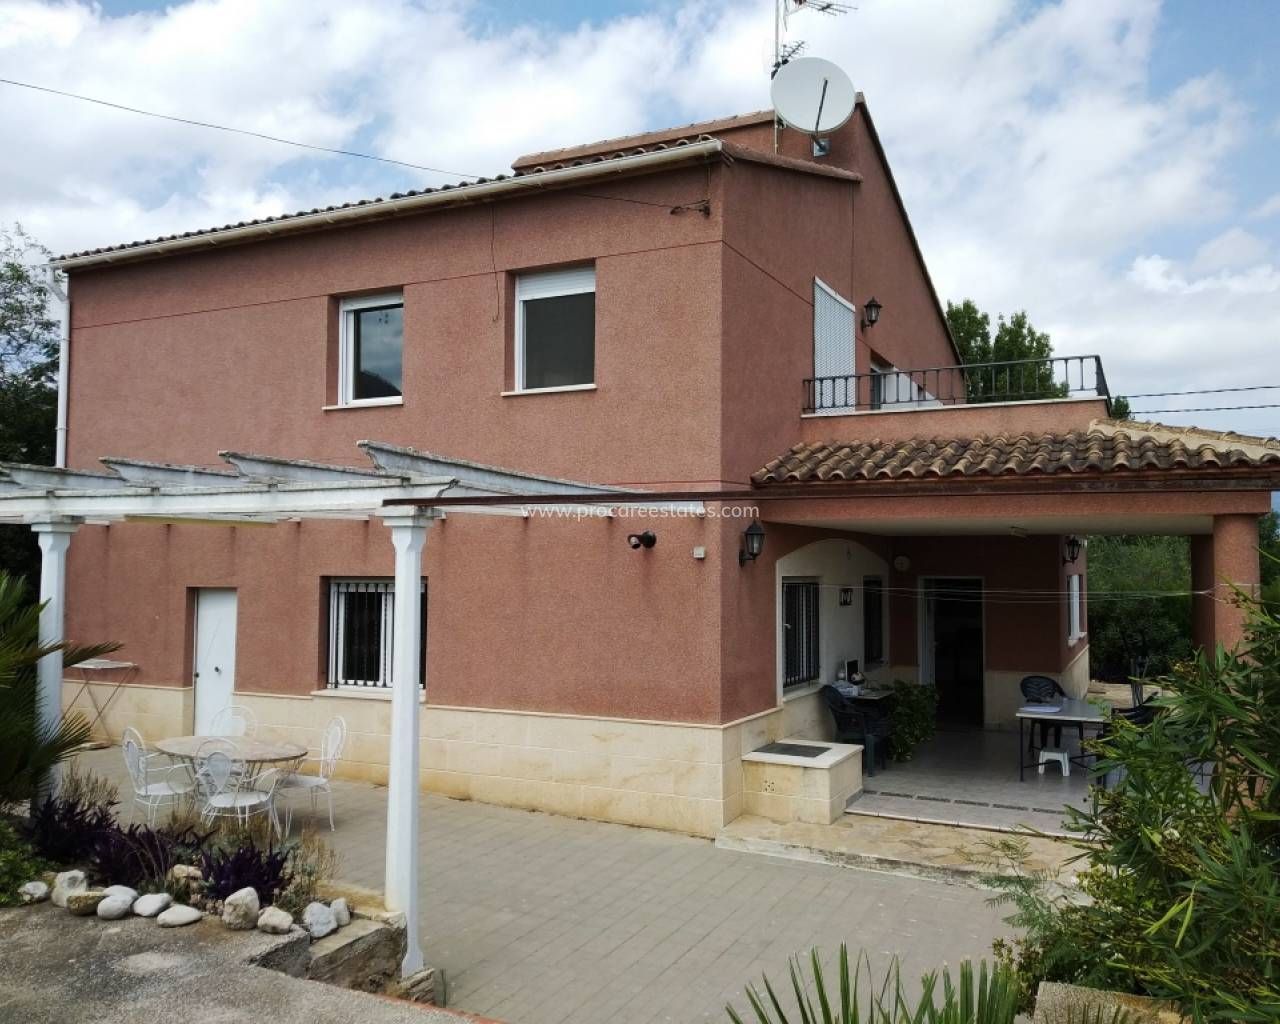 Verkoop - Country Property - Cocentaina